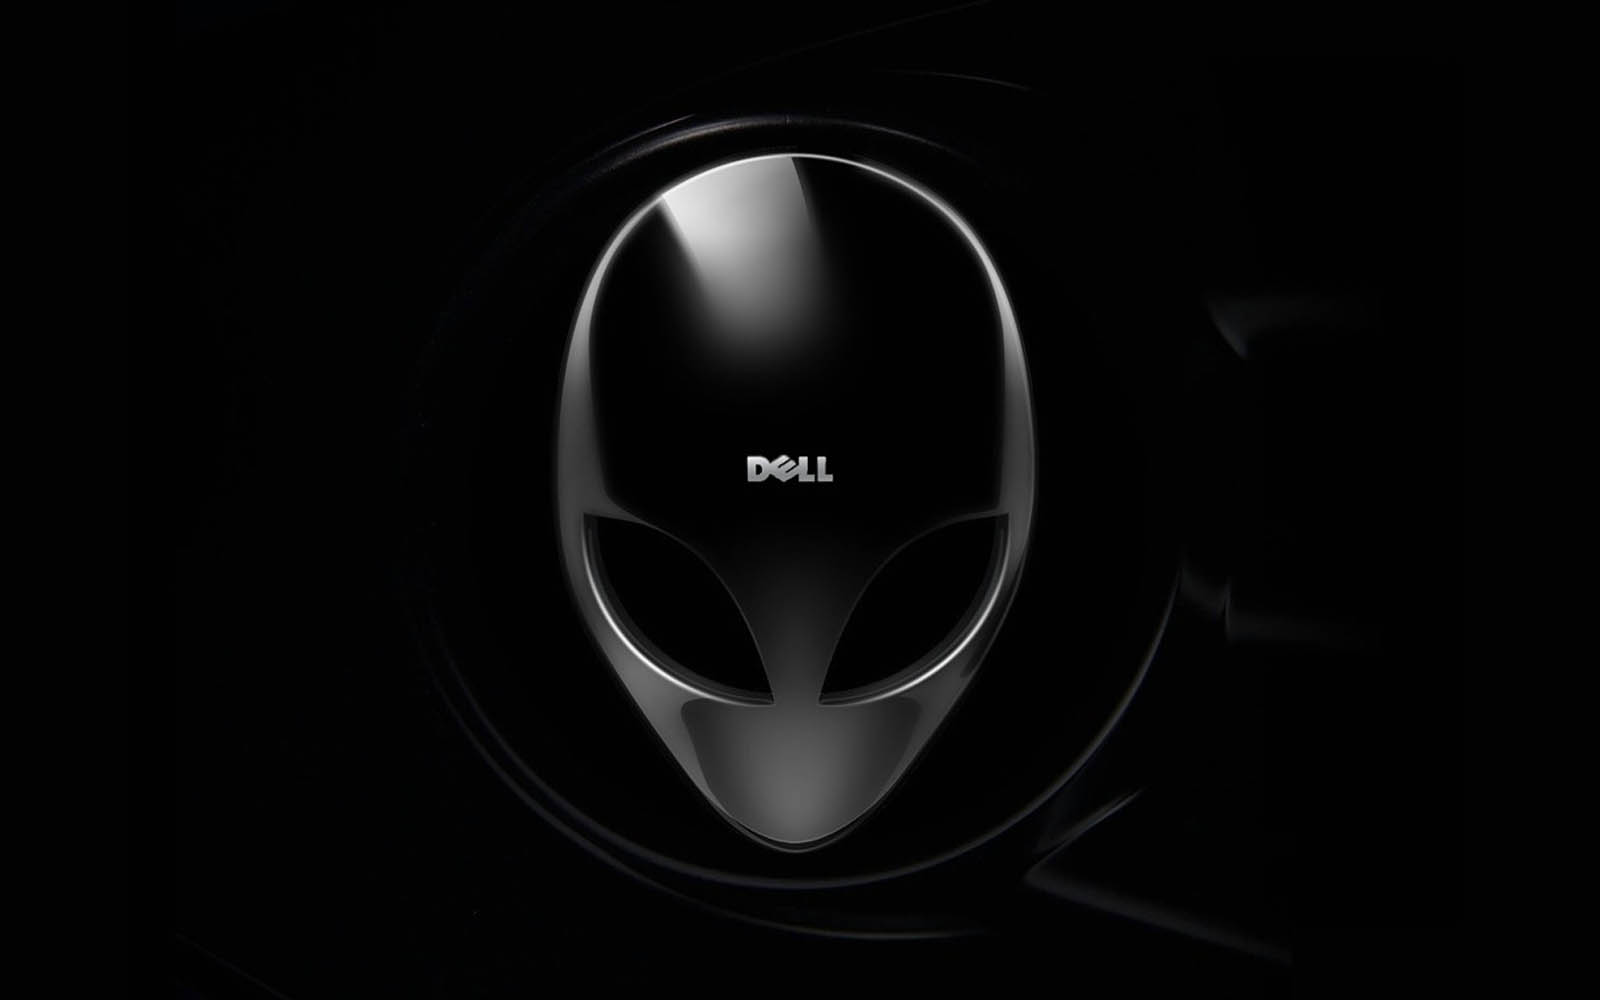 Hq dell wallpaper full hd pictures - 4k wallpaper for dell laptop ...